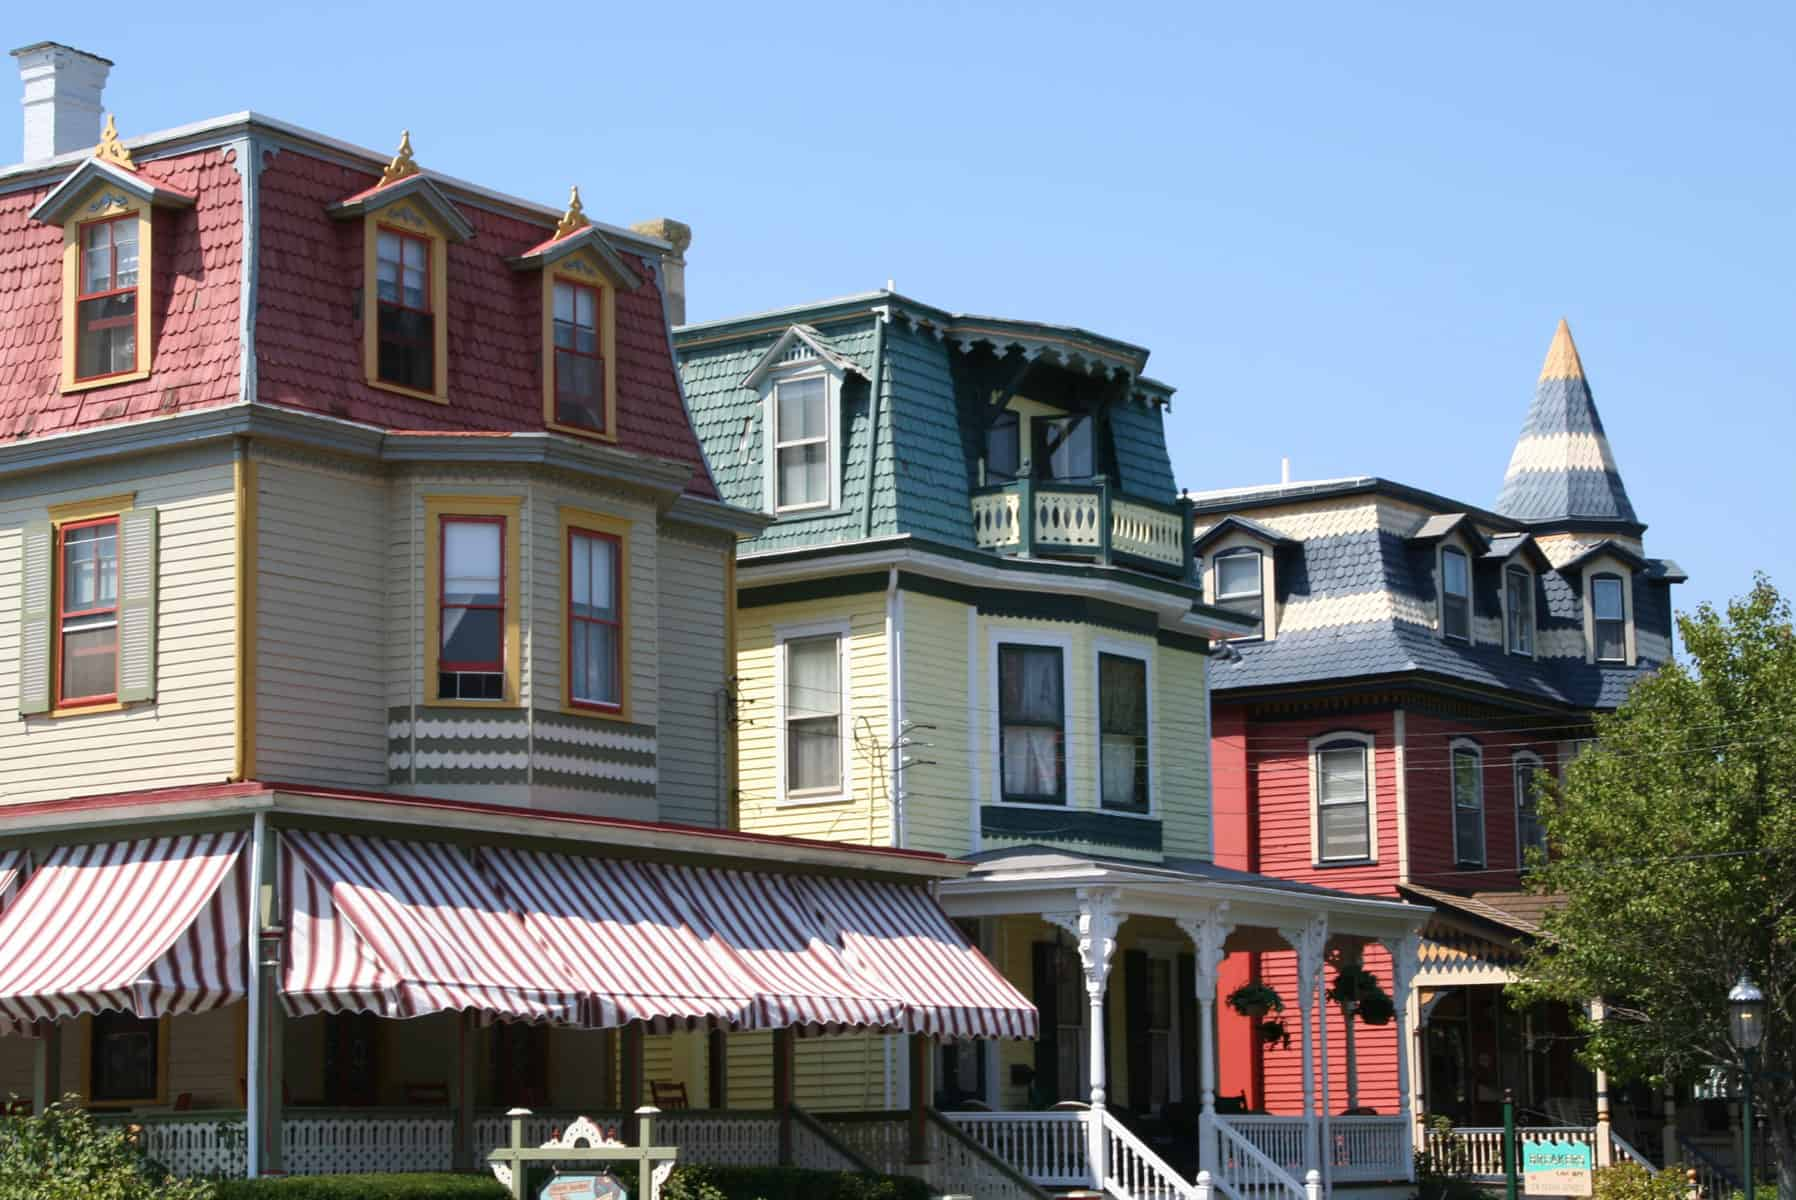 victorian buildings in Cape May